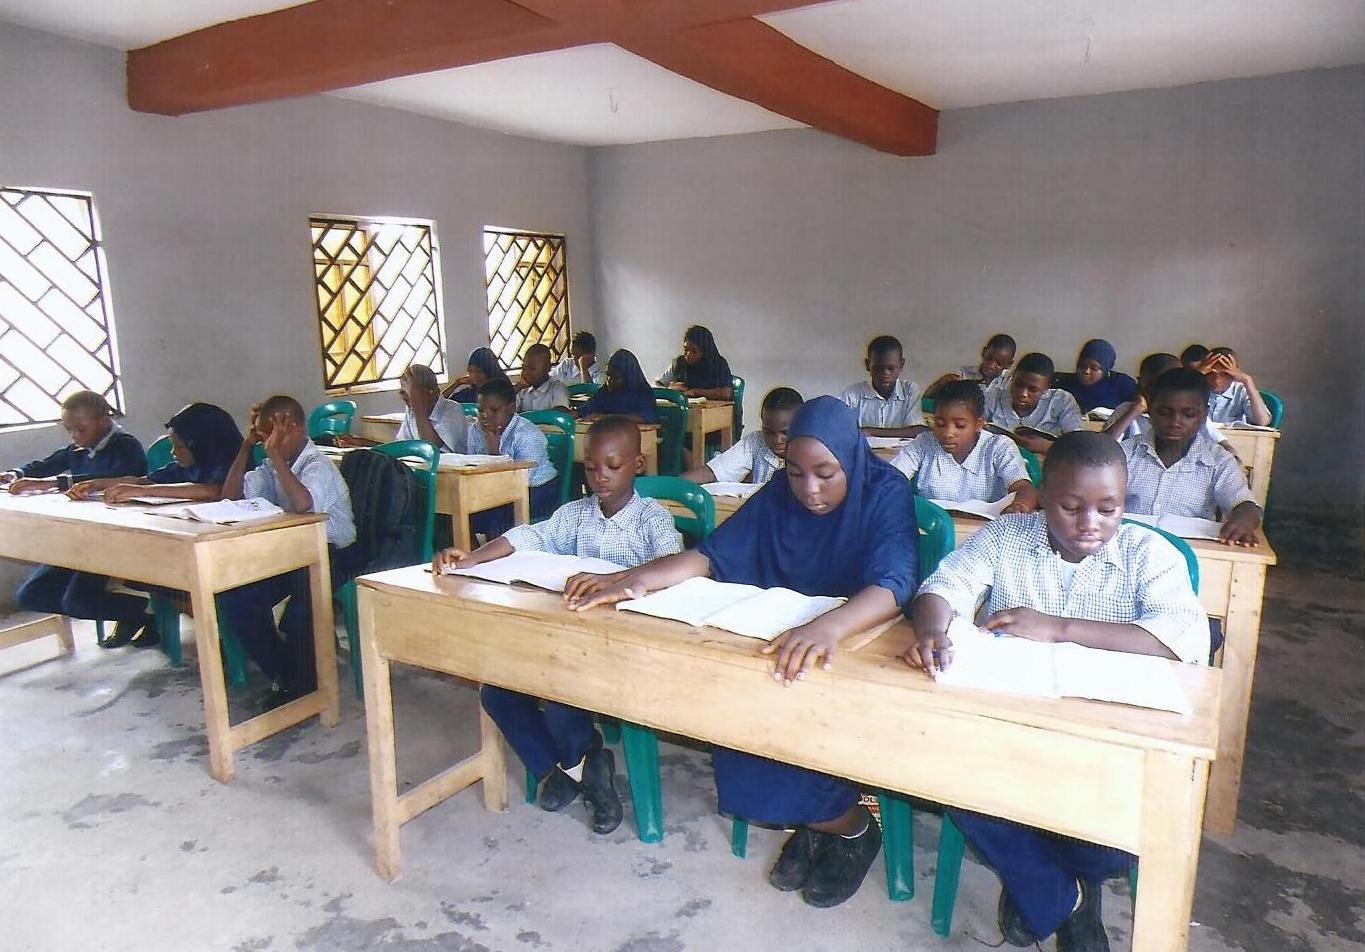 BICAS STUDENT IN CLASS2